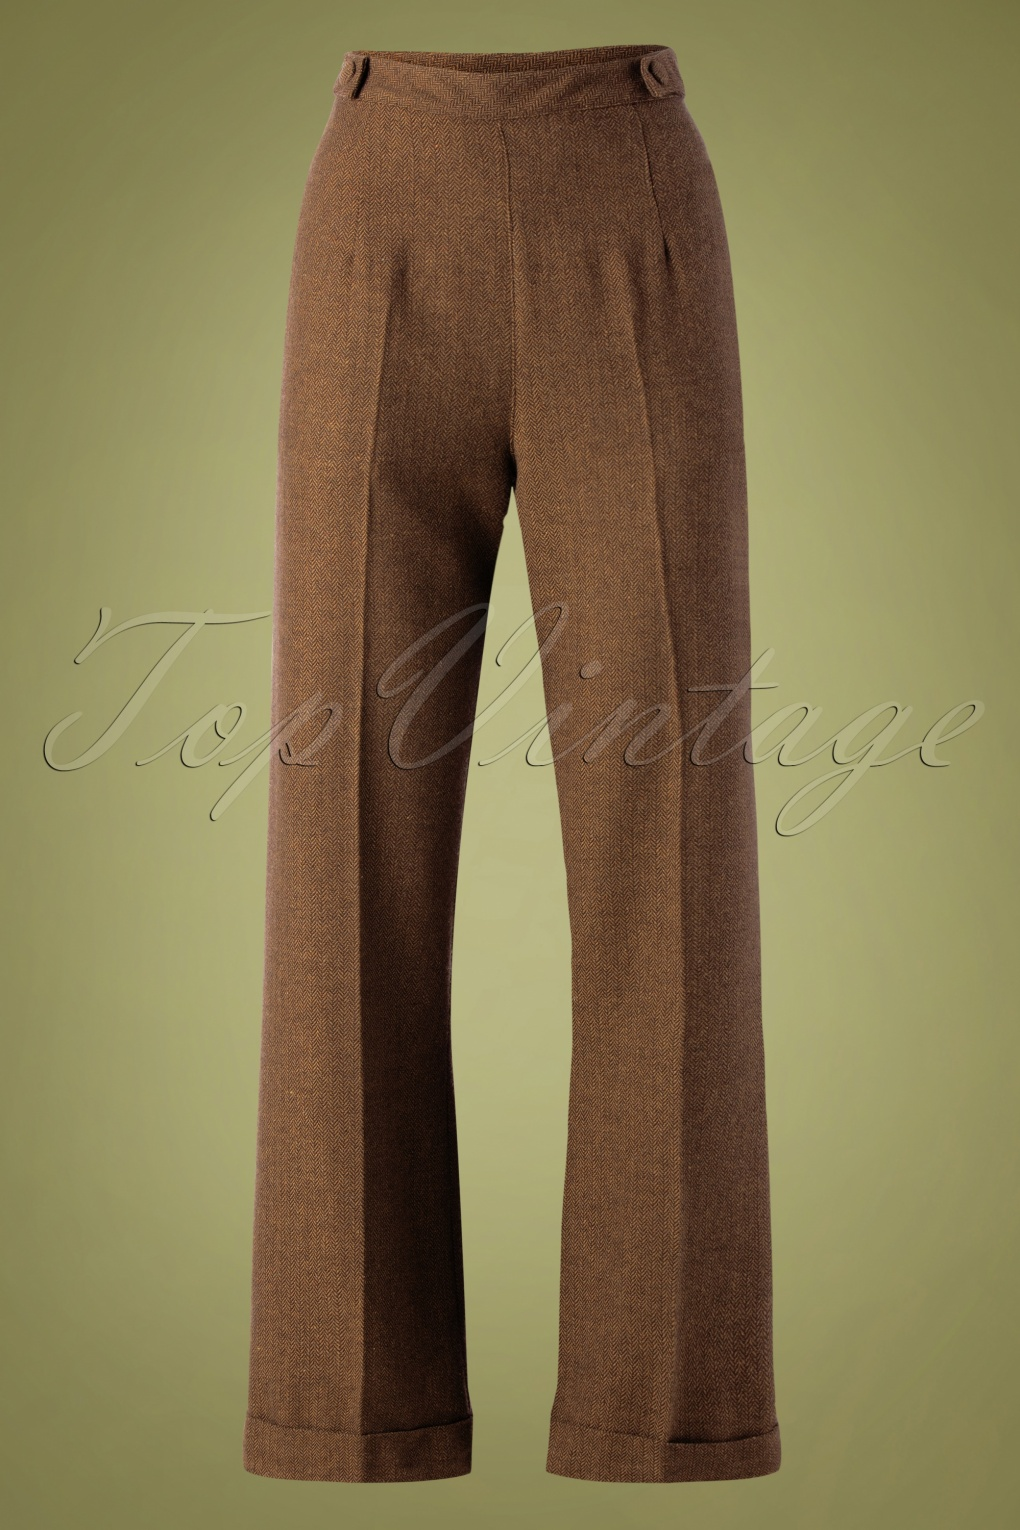 1940s Swing Pants & Sailor Trousers- Wide Leg, High Waist 40s Work It Out Trousers in Brown £36.48 AT vintagedancer.com